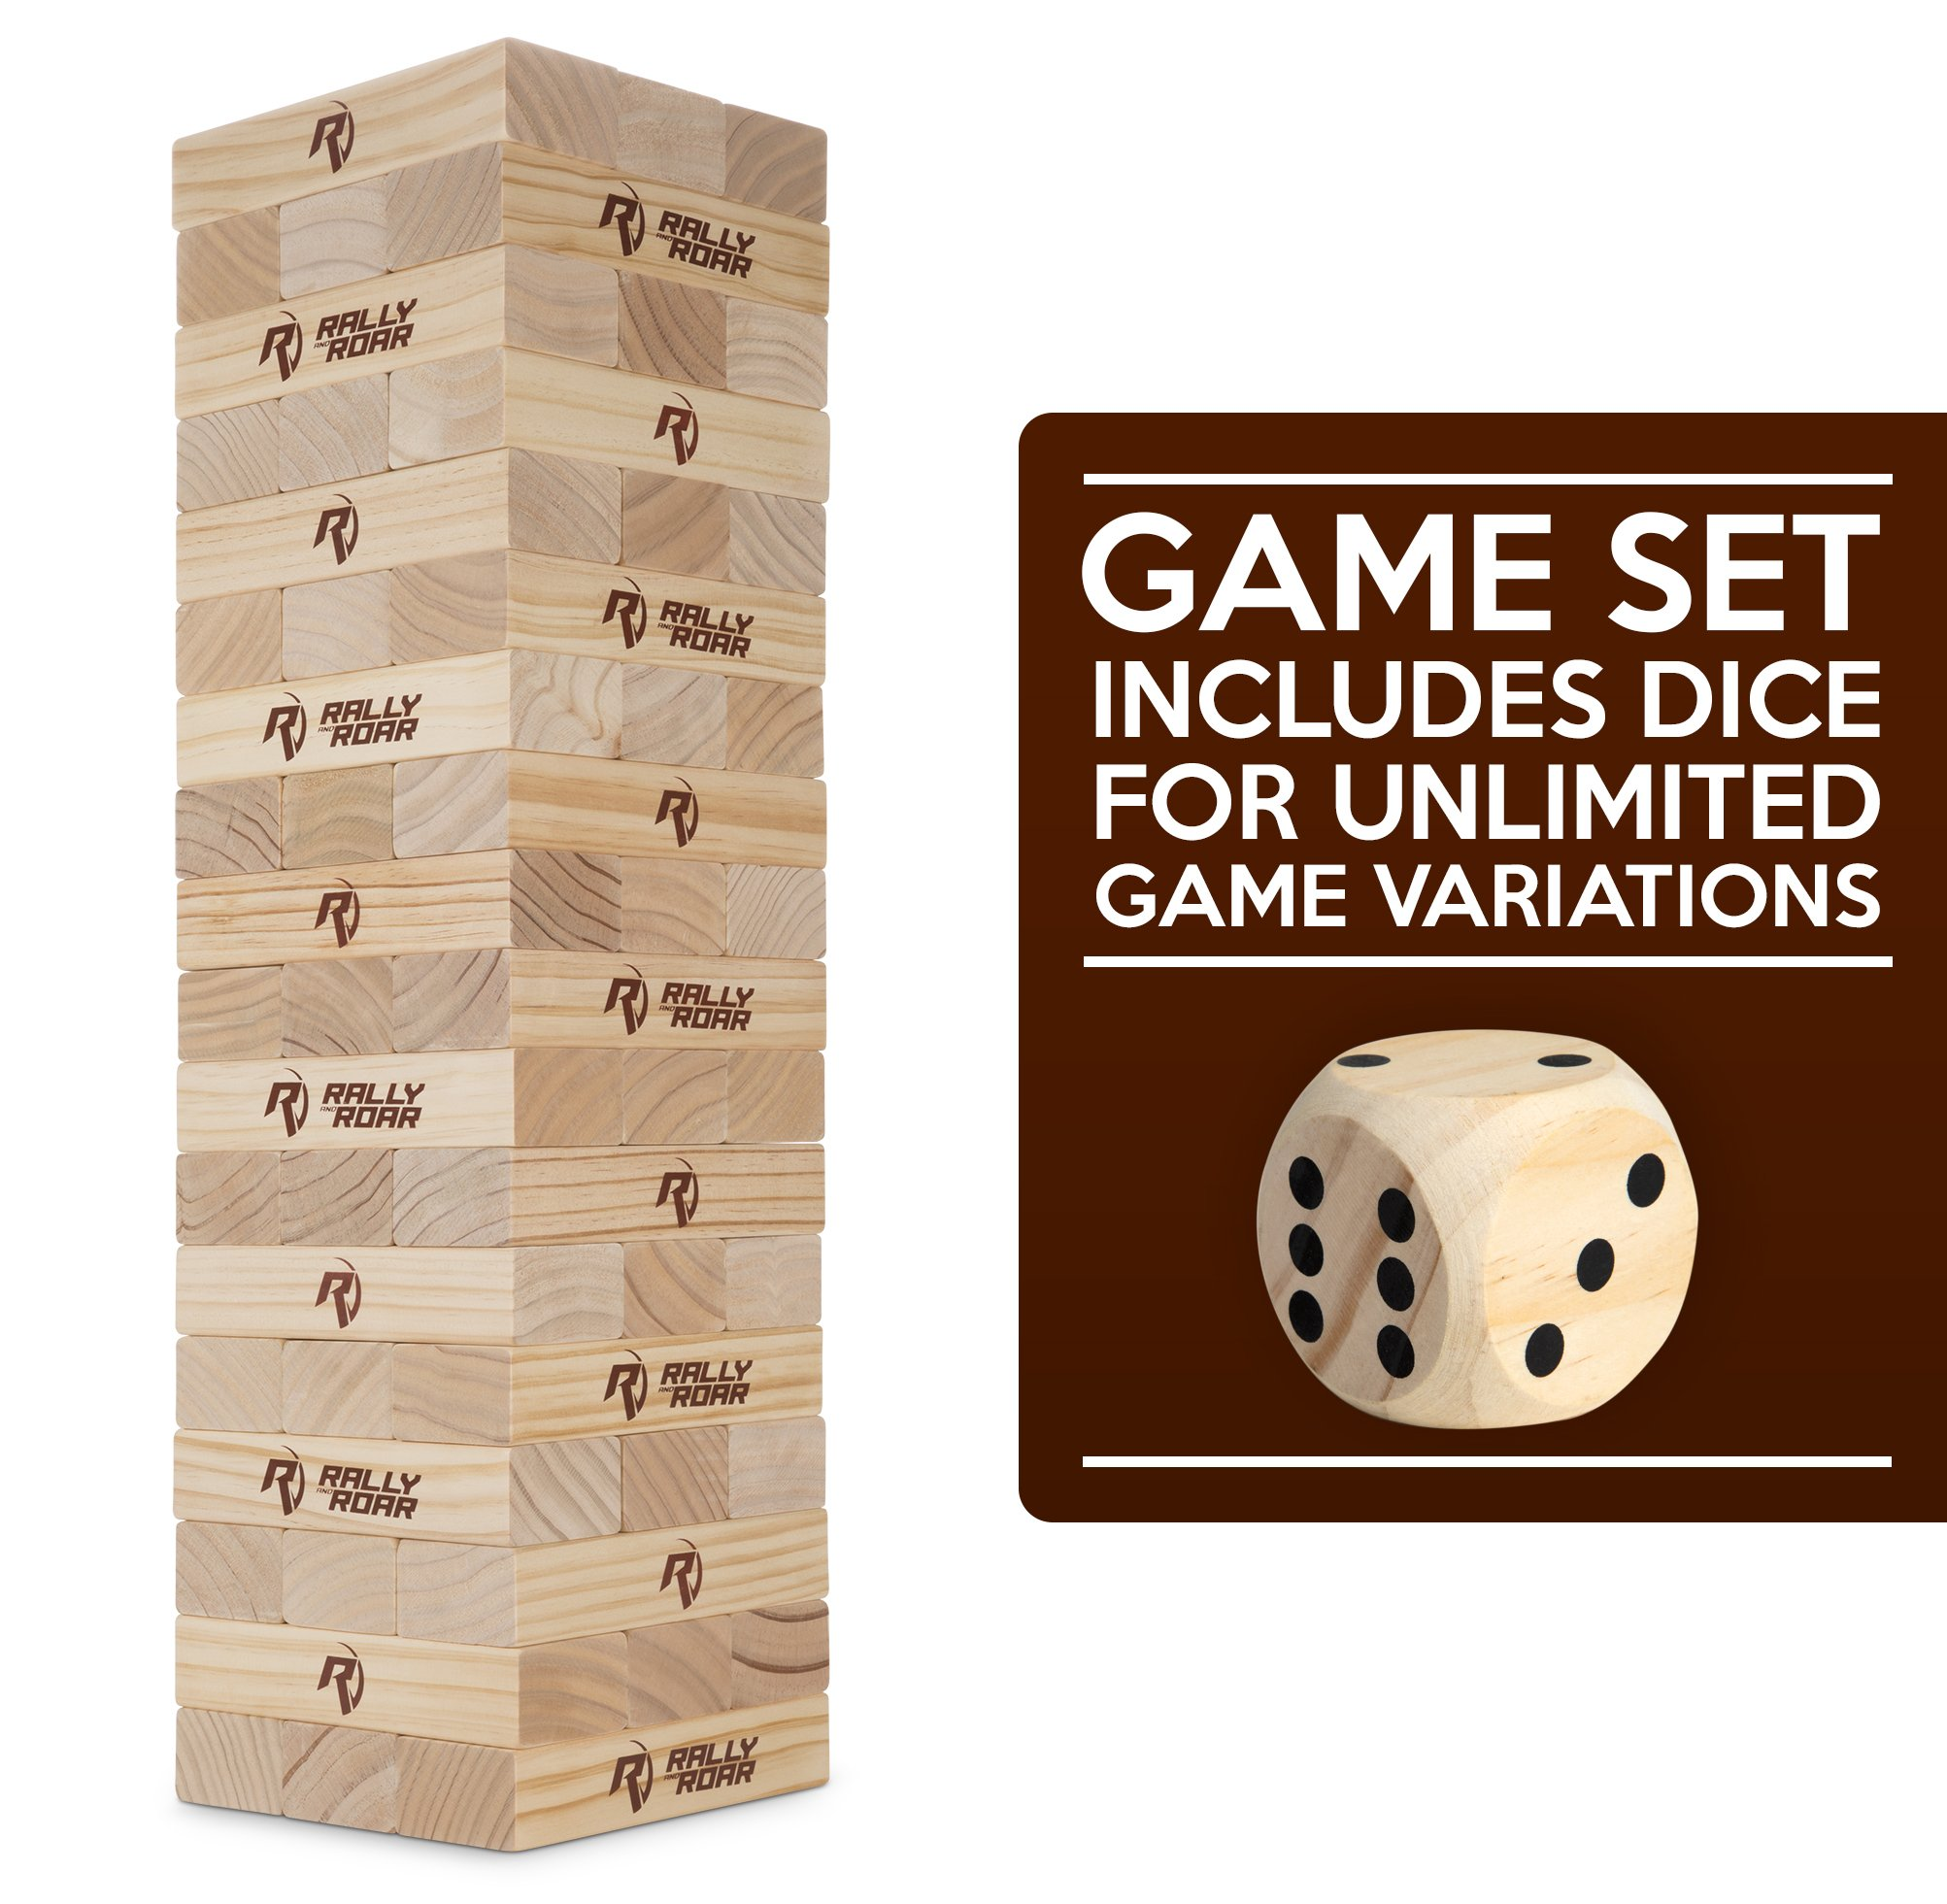 Rally and Roar Toppling Tower Giant Tumbling Timbers Game 2.5 feet Tall (Build to Over 5 feet)– Classic Wood Version - for Adults, Kids, Family – Stacking Blocks Set w/Canvas Bag by Rally and Roar (Image #8)